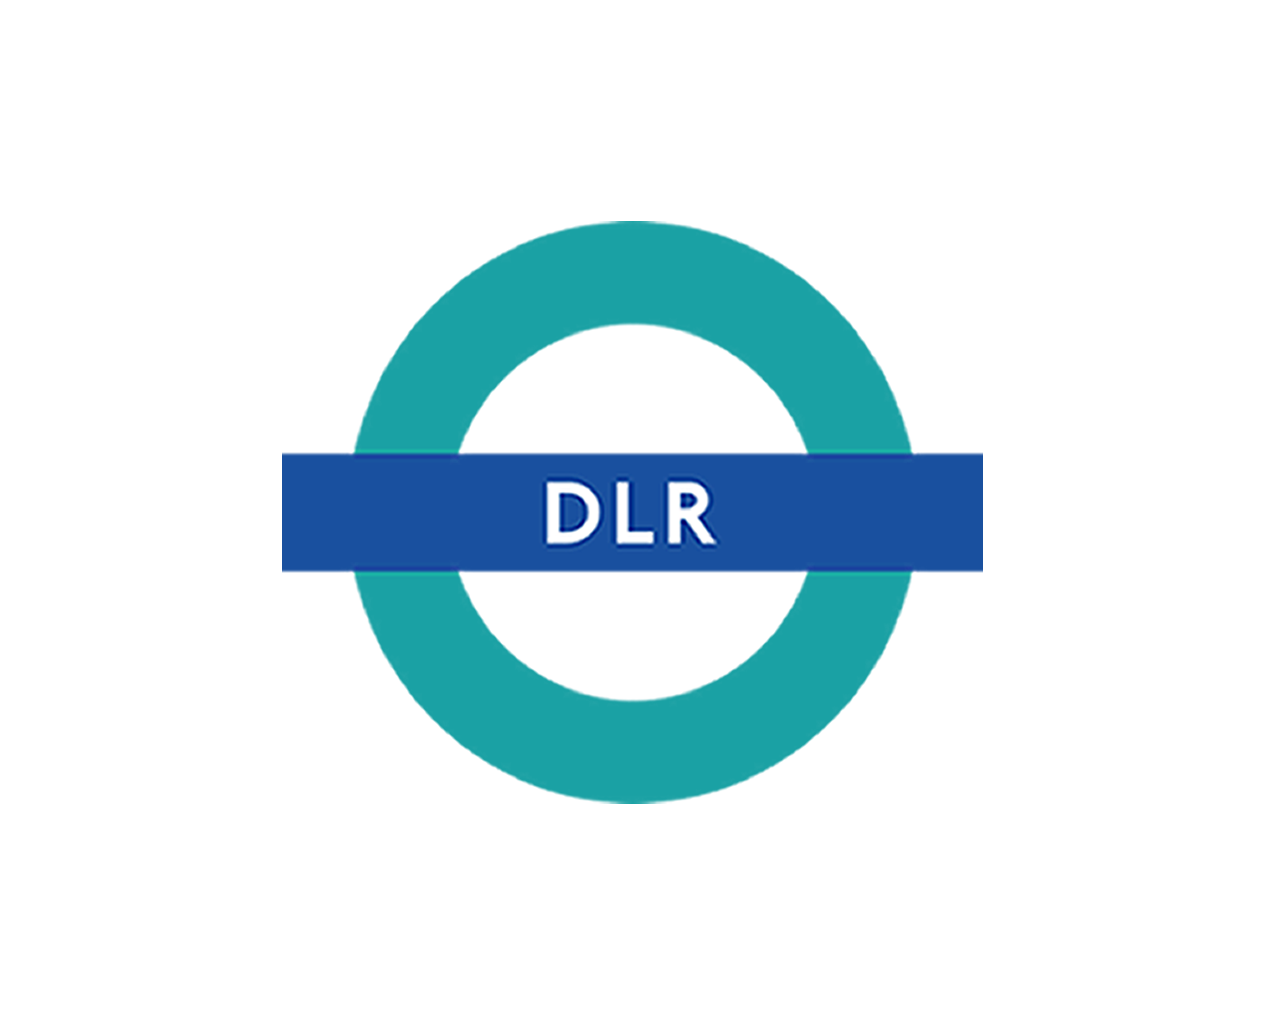 Docklands_Light_Railway_logo